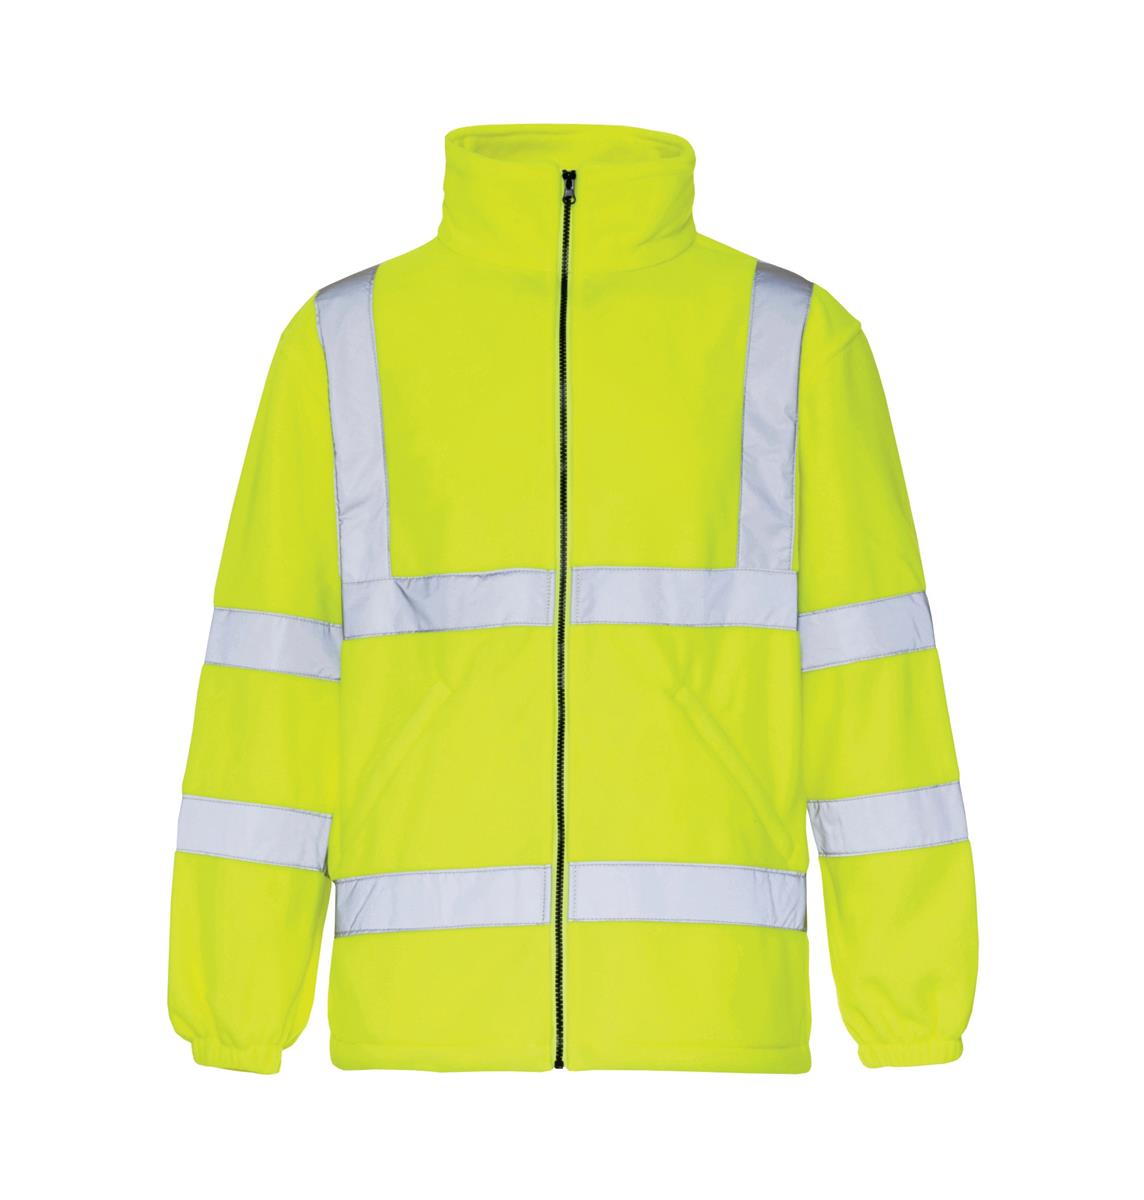 ST High Vis Micro Fleece Jacket Poly with Zip Fastening Small Yellow Ref 38041 *Approx 3 Day Leadtime*